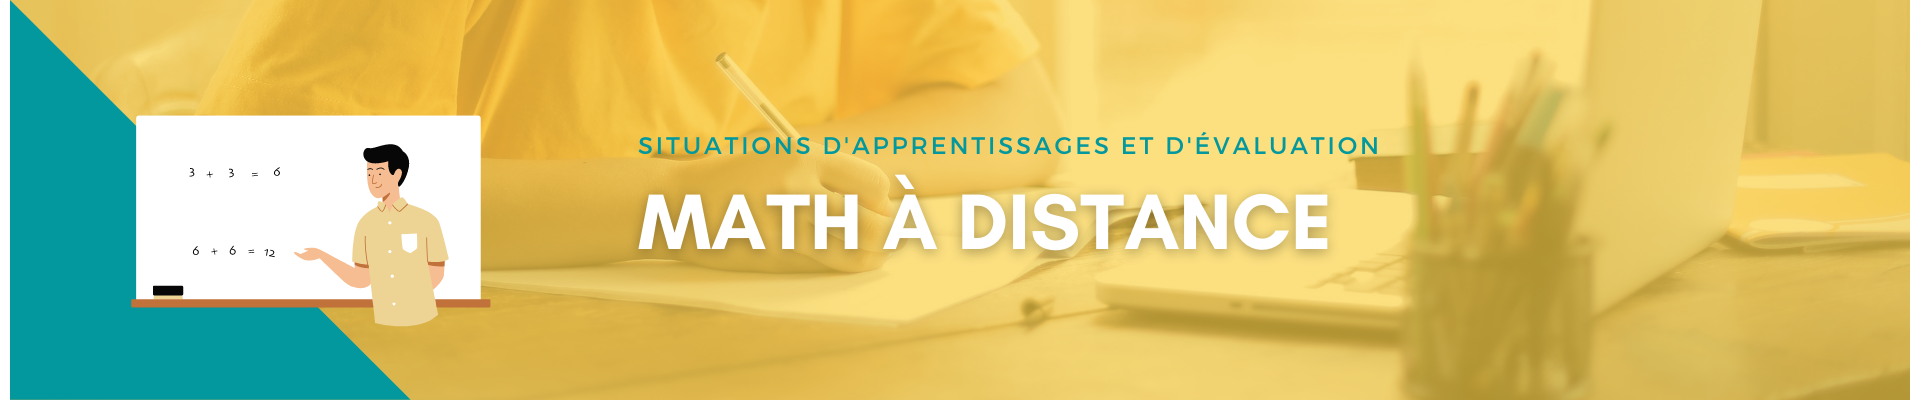 Situations d'apprentissage et d'évaluation